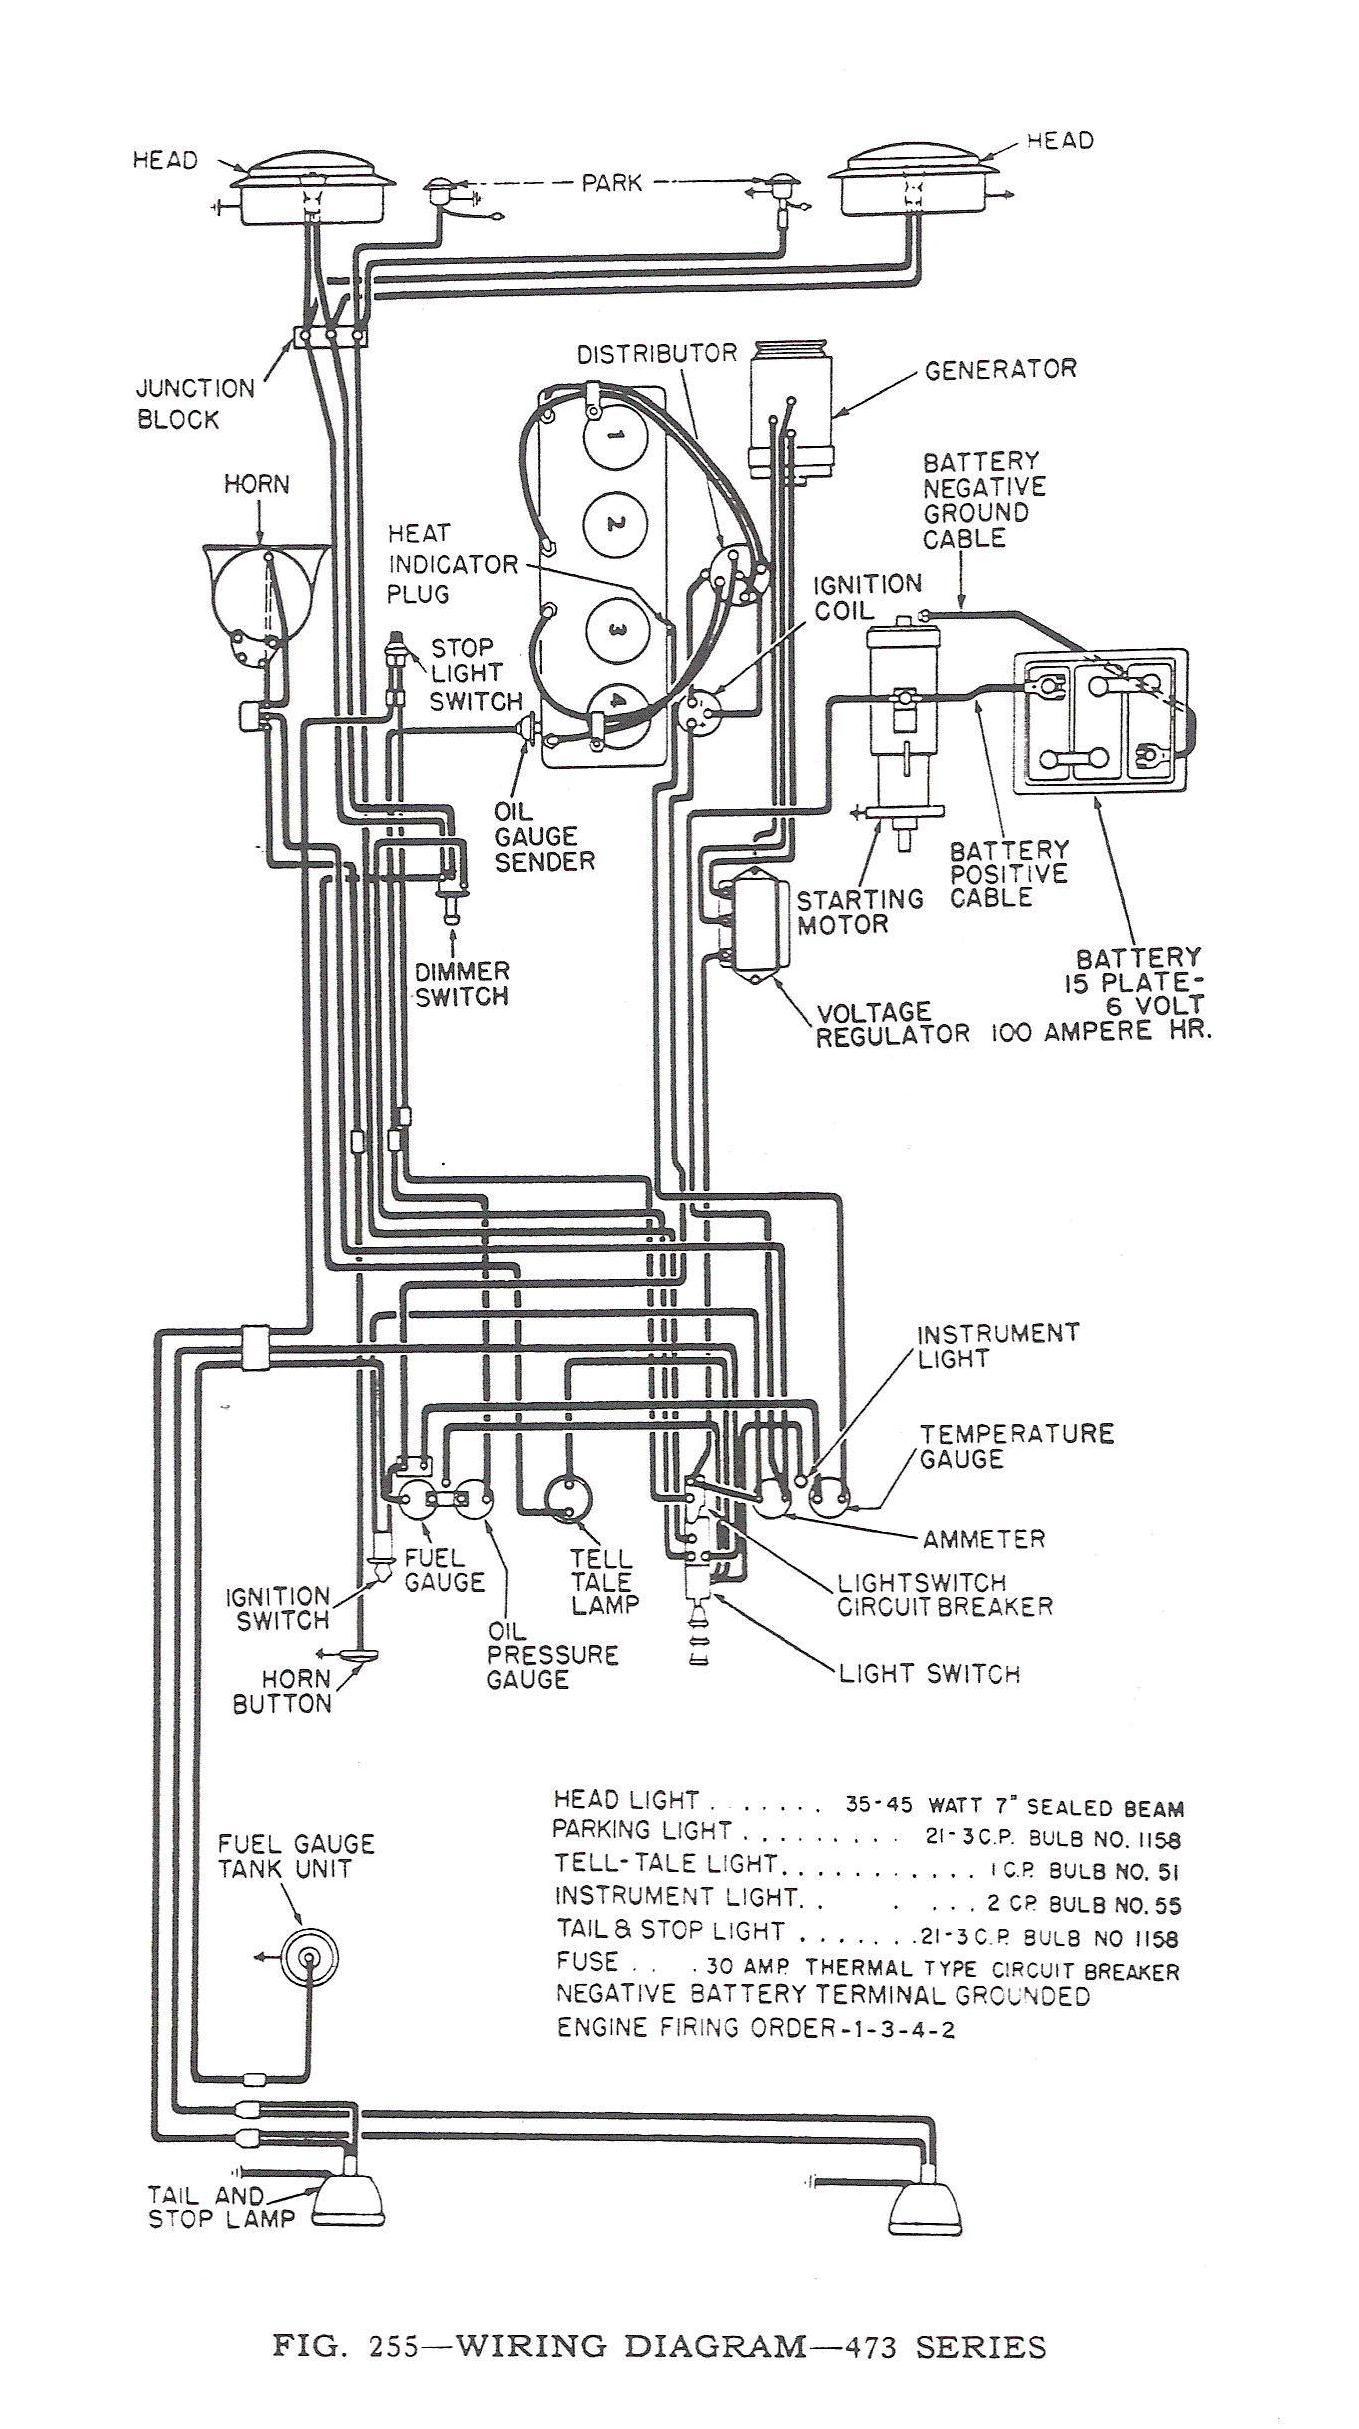 1964 Willys Jeep Wiring Diagram - Electrical Wiring Diagram Guide on